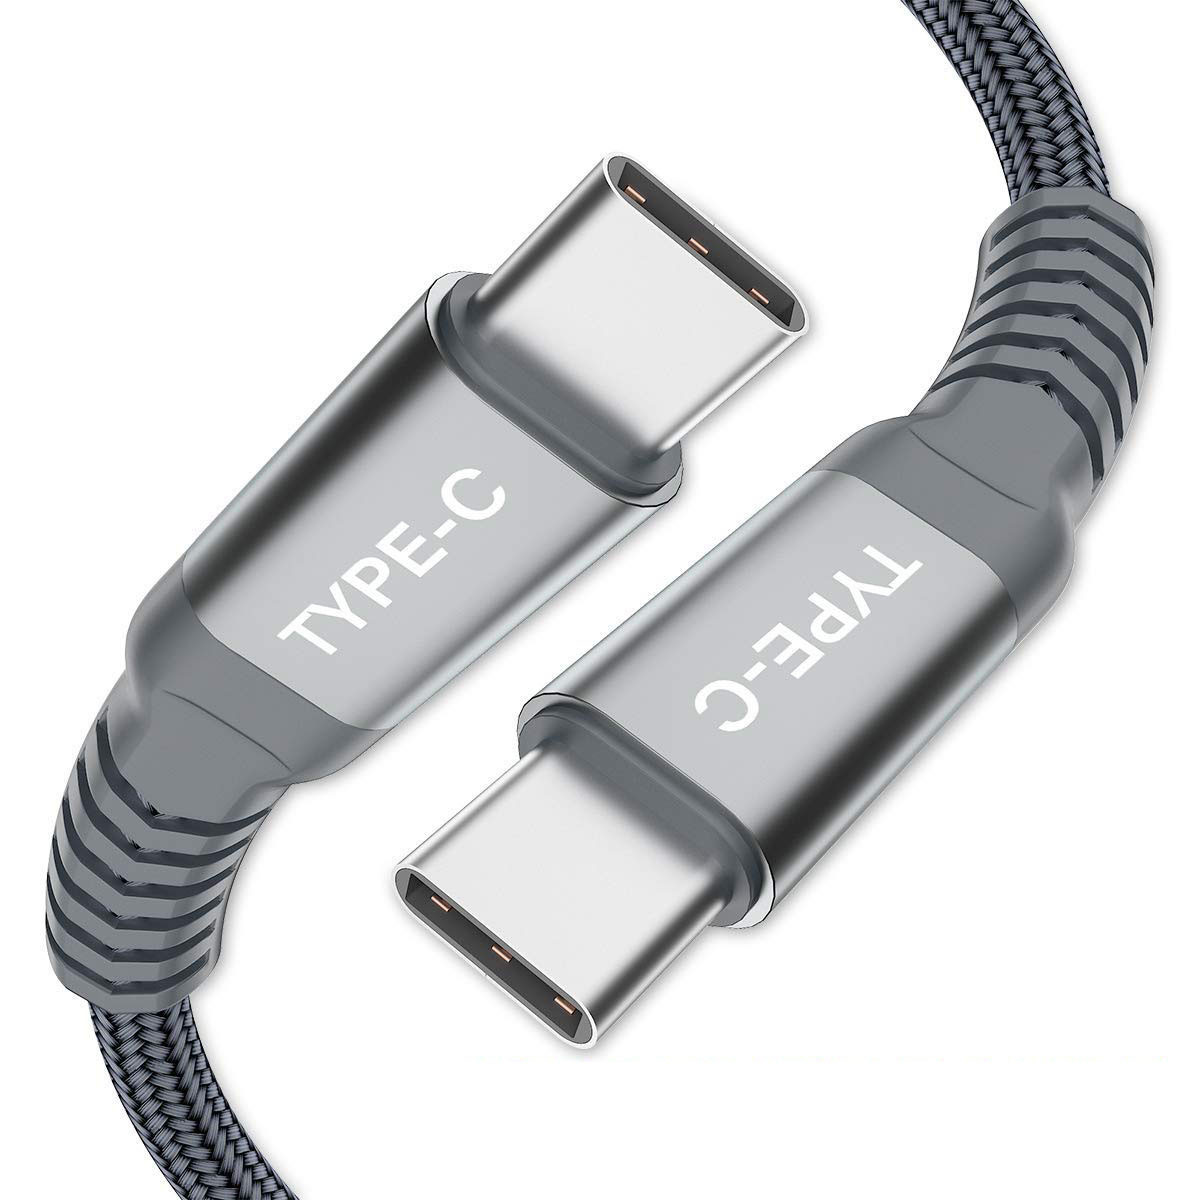 USB C TO USB C Cable-grey